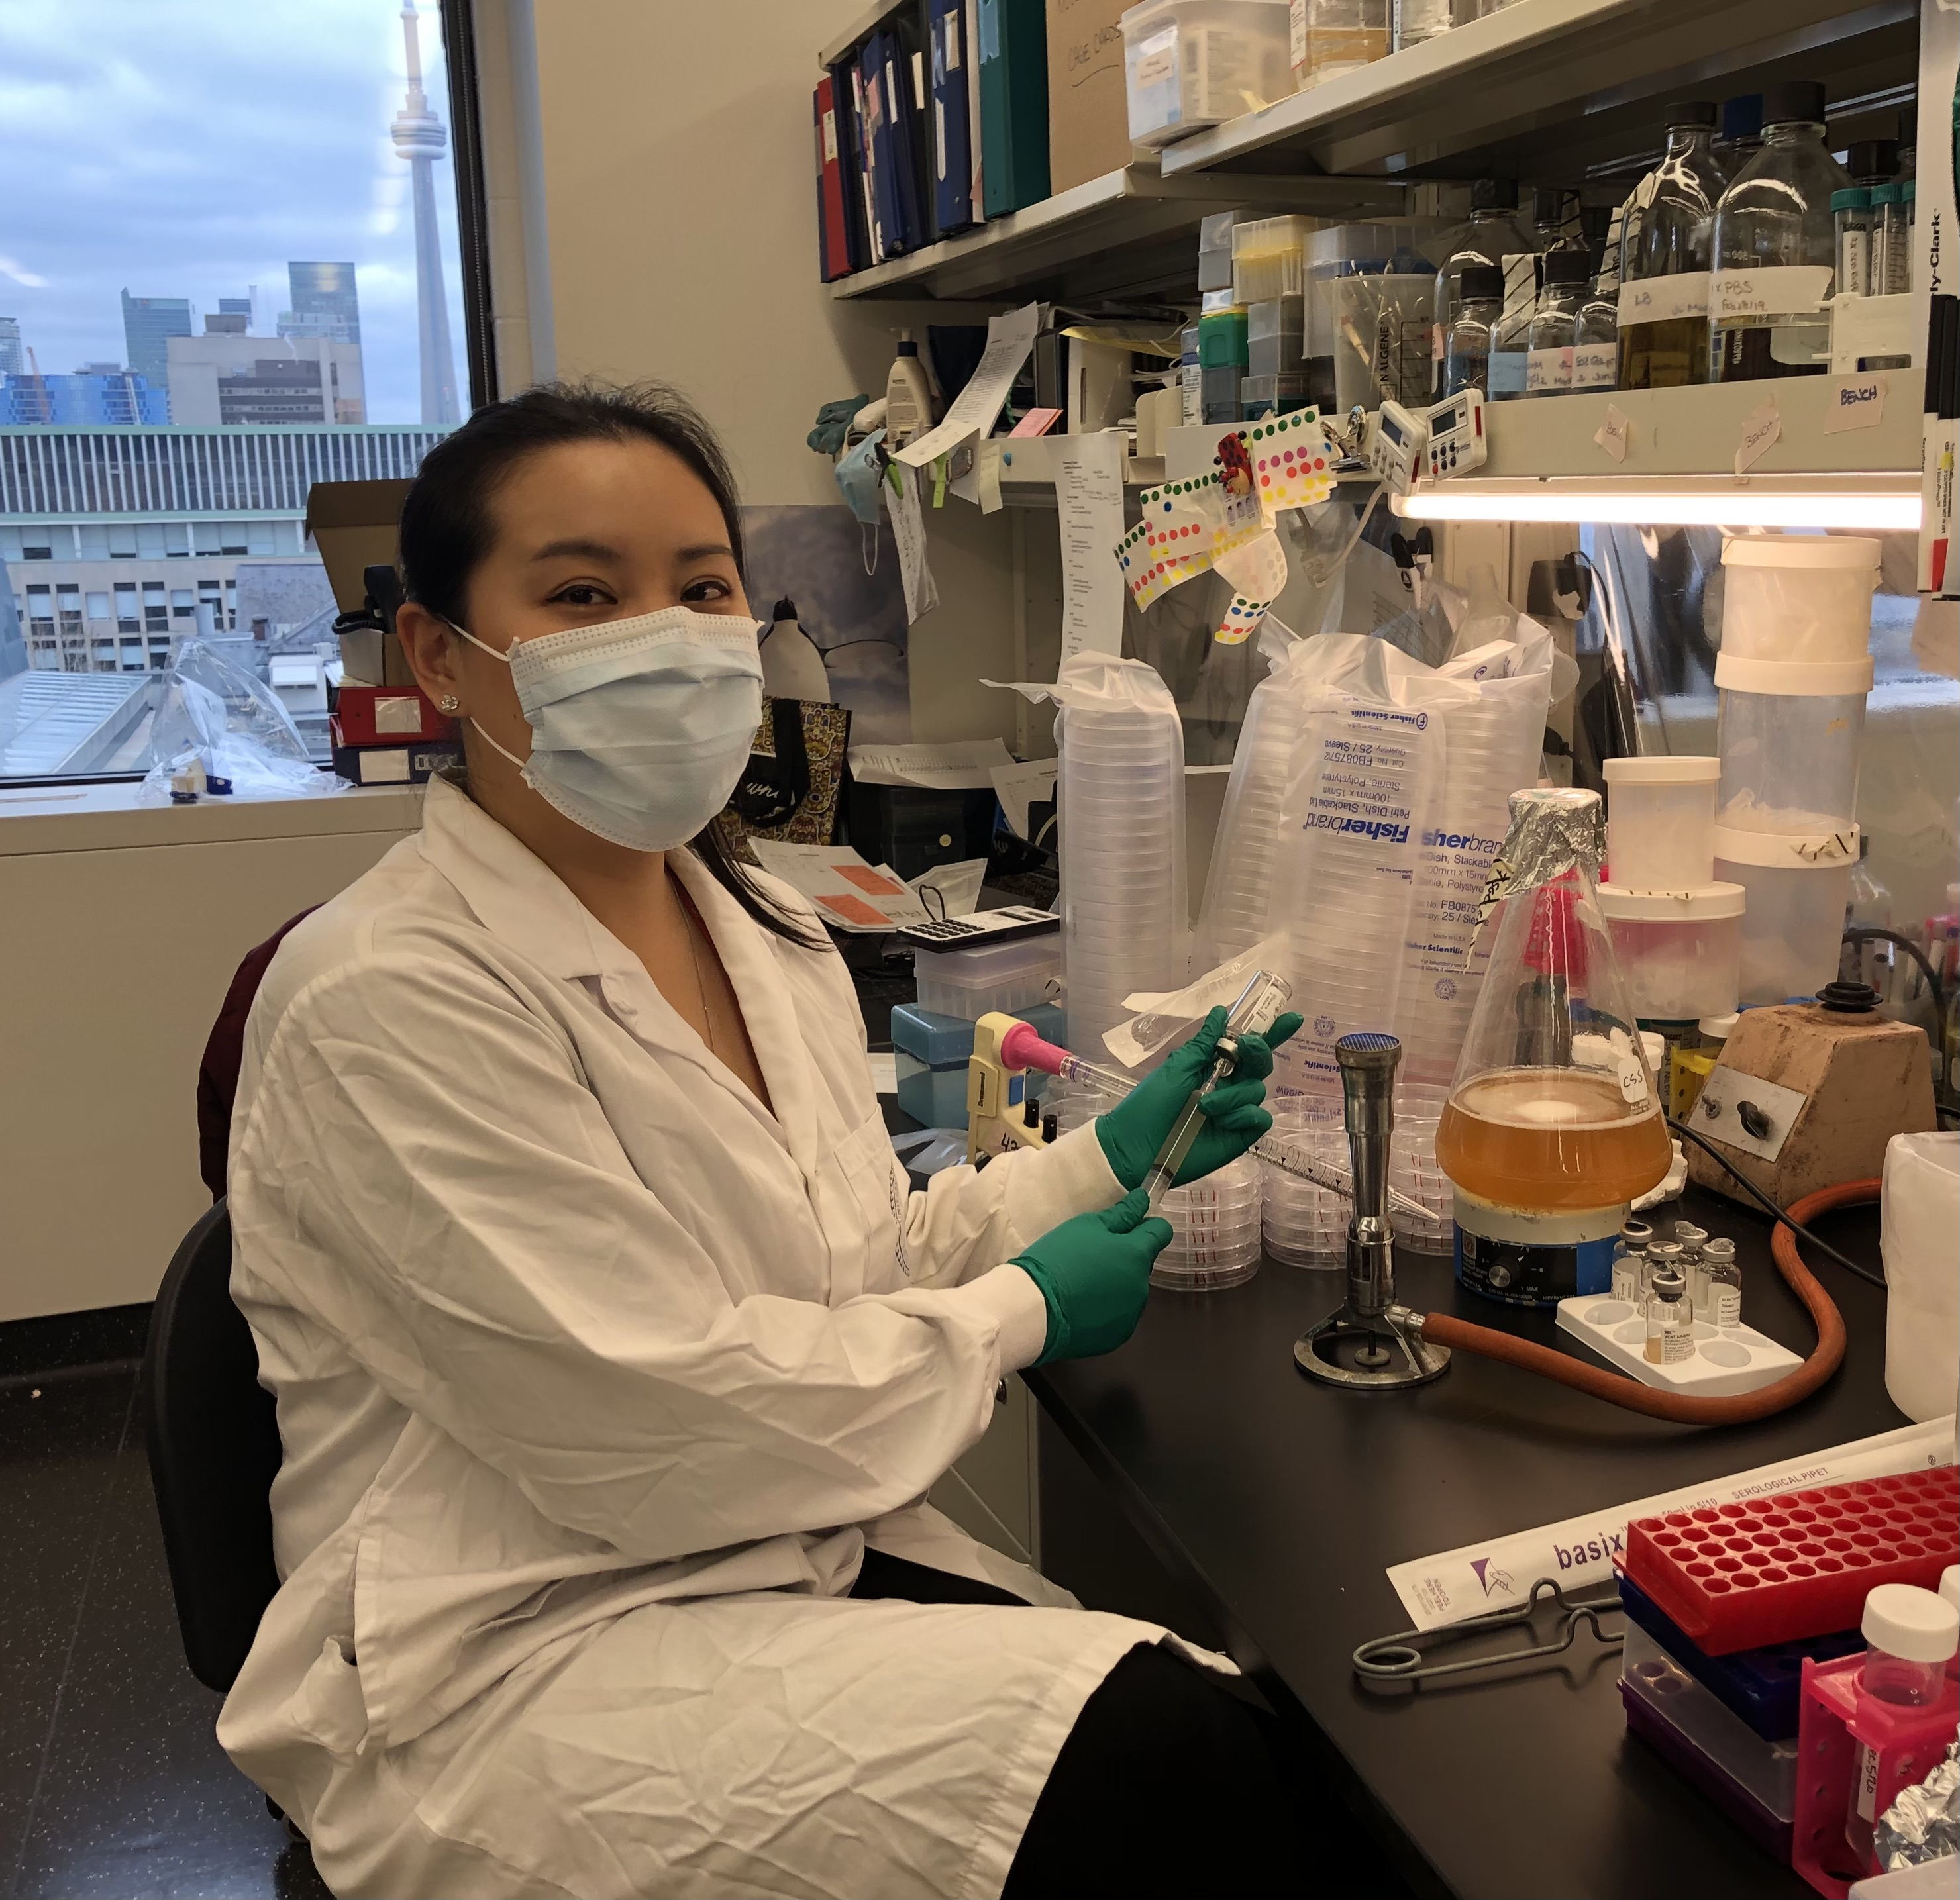 Jessica Lam at work in her lab